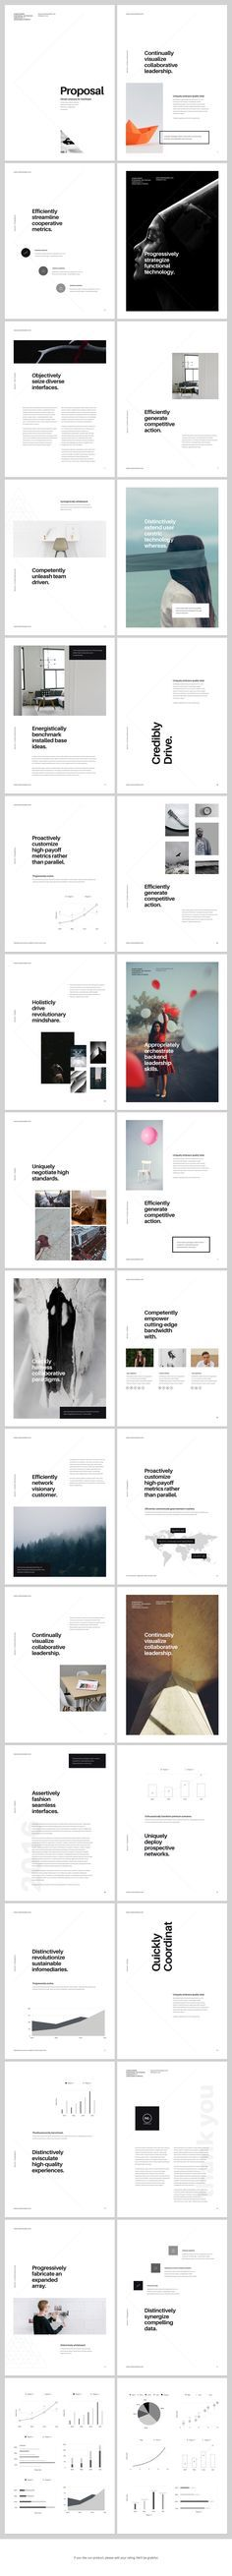 A4 Keynote Presentation for Print by GoaShape #design Download…